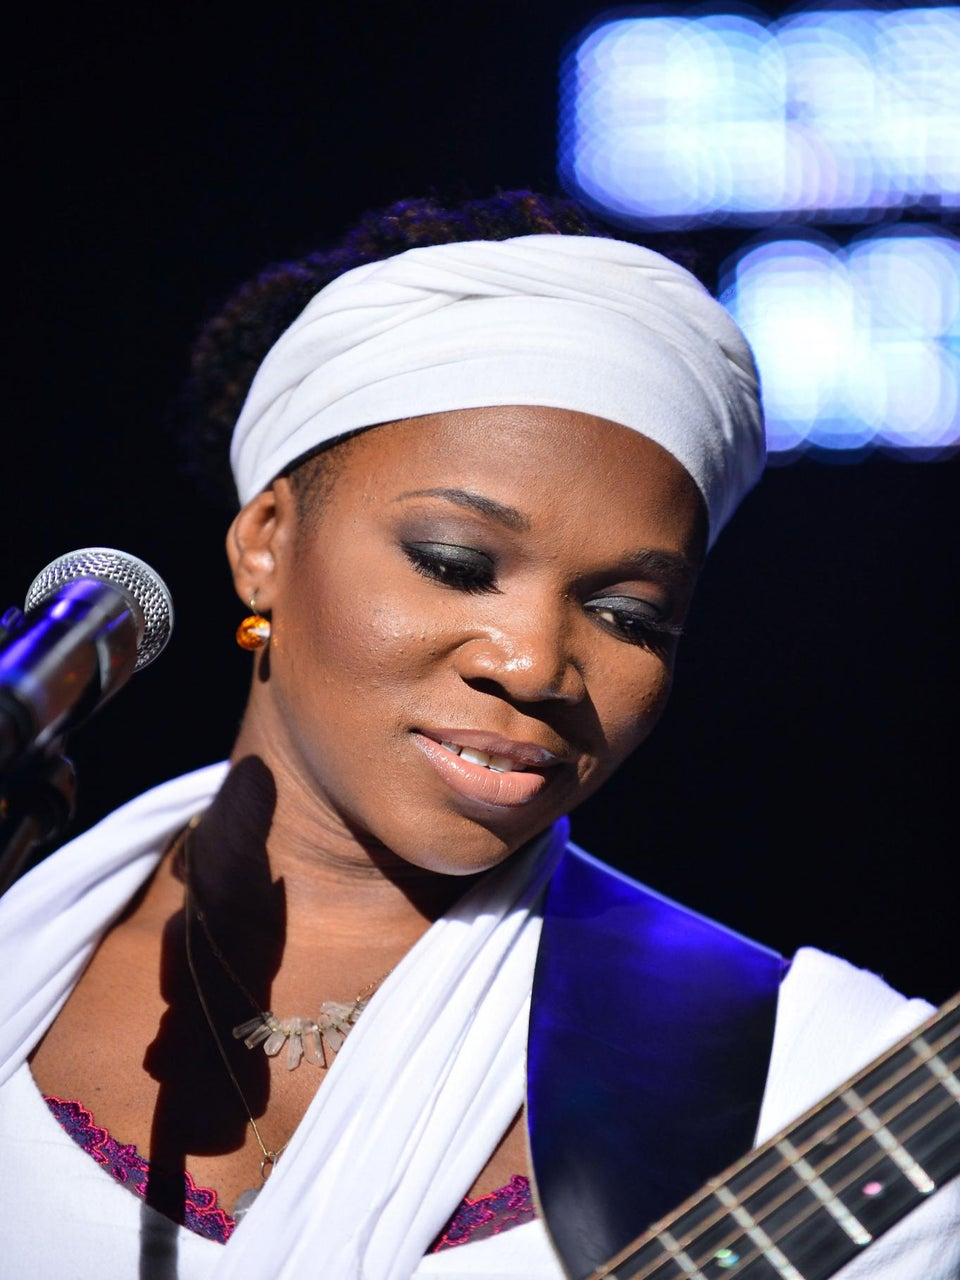 EXCLUSIVE Premiere: Watch India Arie's New Video, 'Break the Shell'